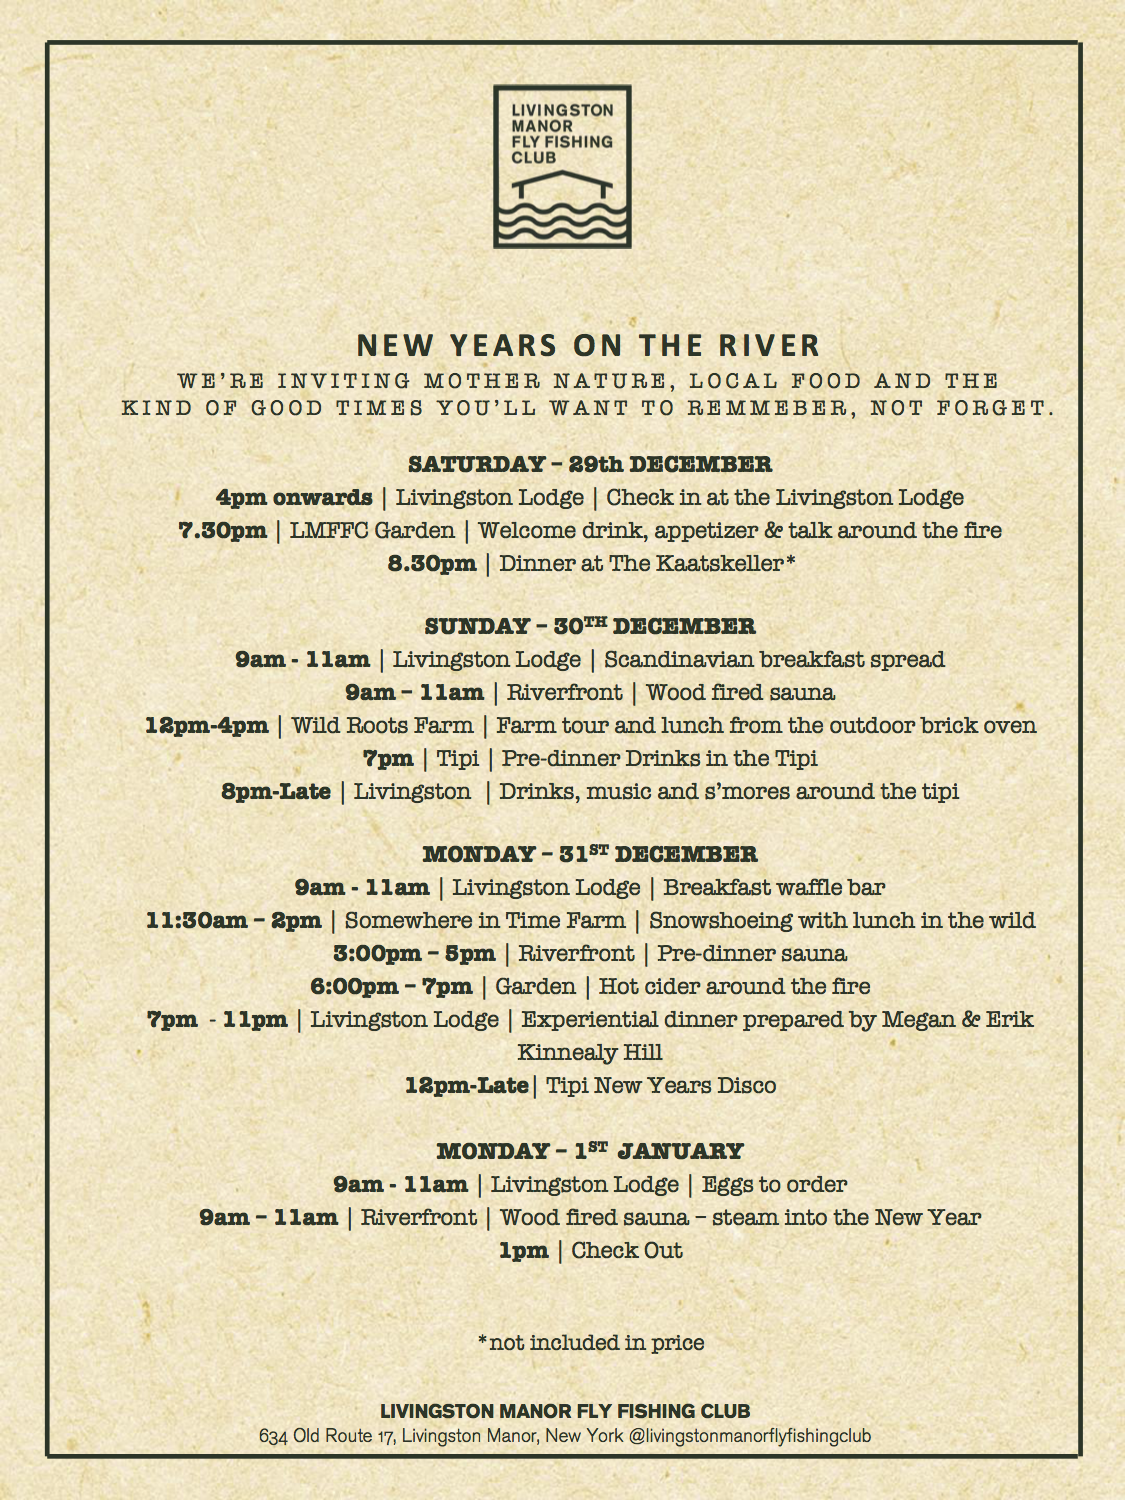 Sample Itinerary - New Years in the Wild.png